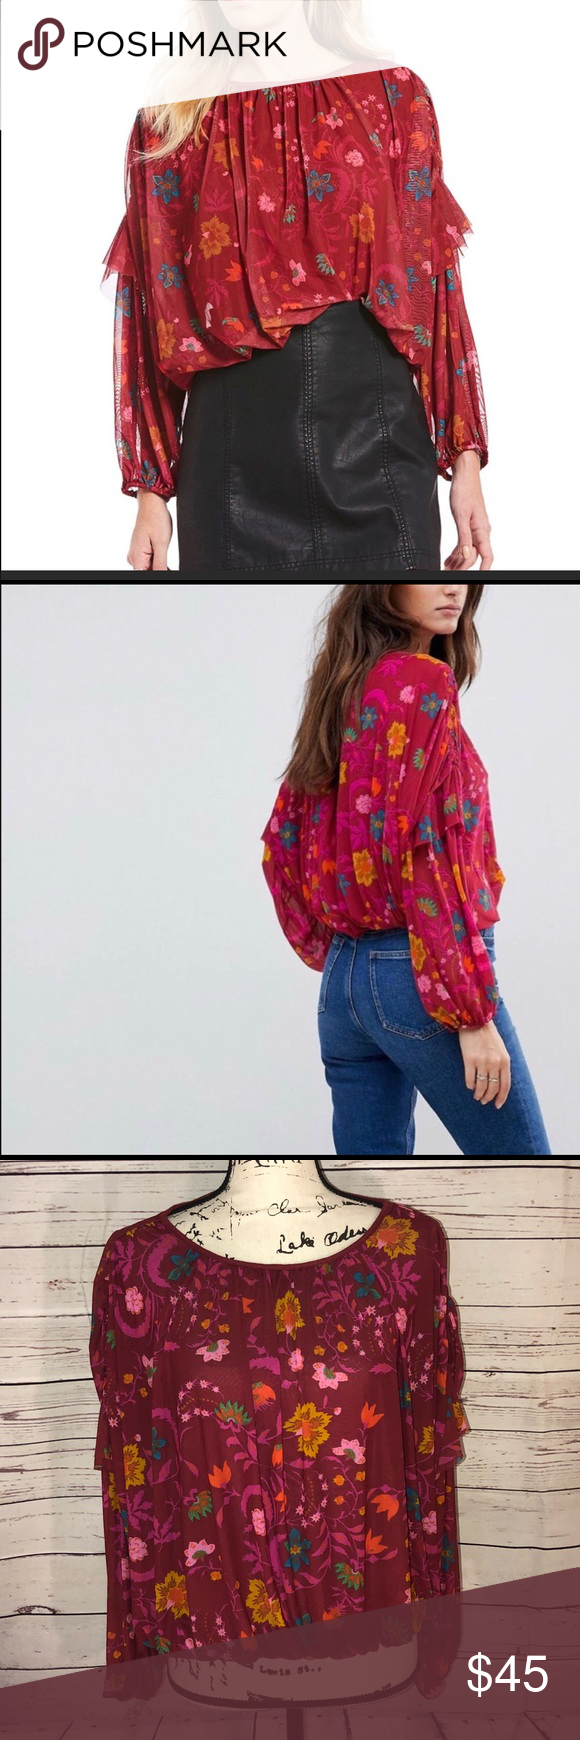 c528b593953e57 Free People Wildflower Honey Top Size S NWT Free People Wildflower Honey Top  in Berry Combo Size S NWT Across the chest laid flat is approximately 27 in  ...